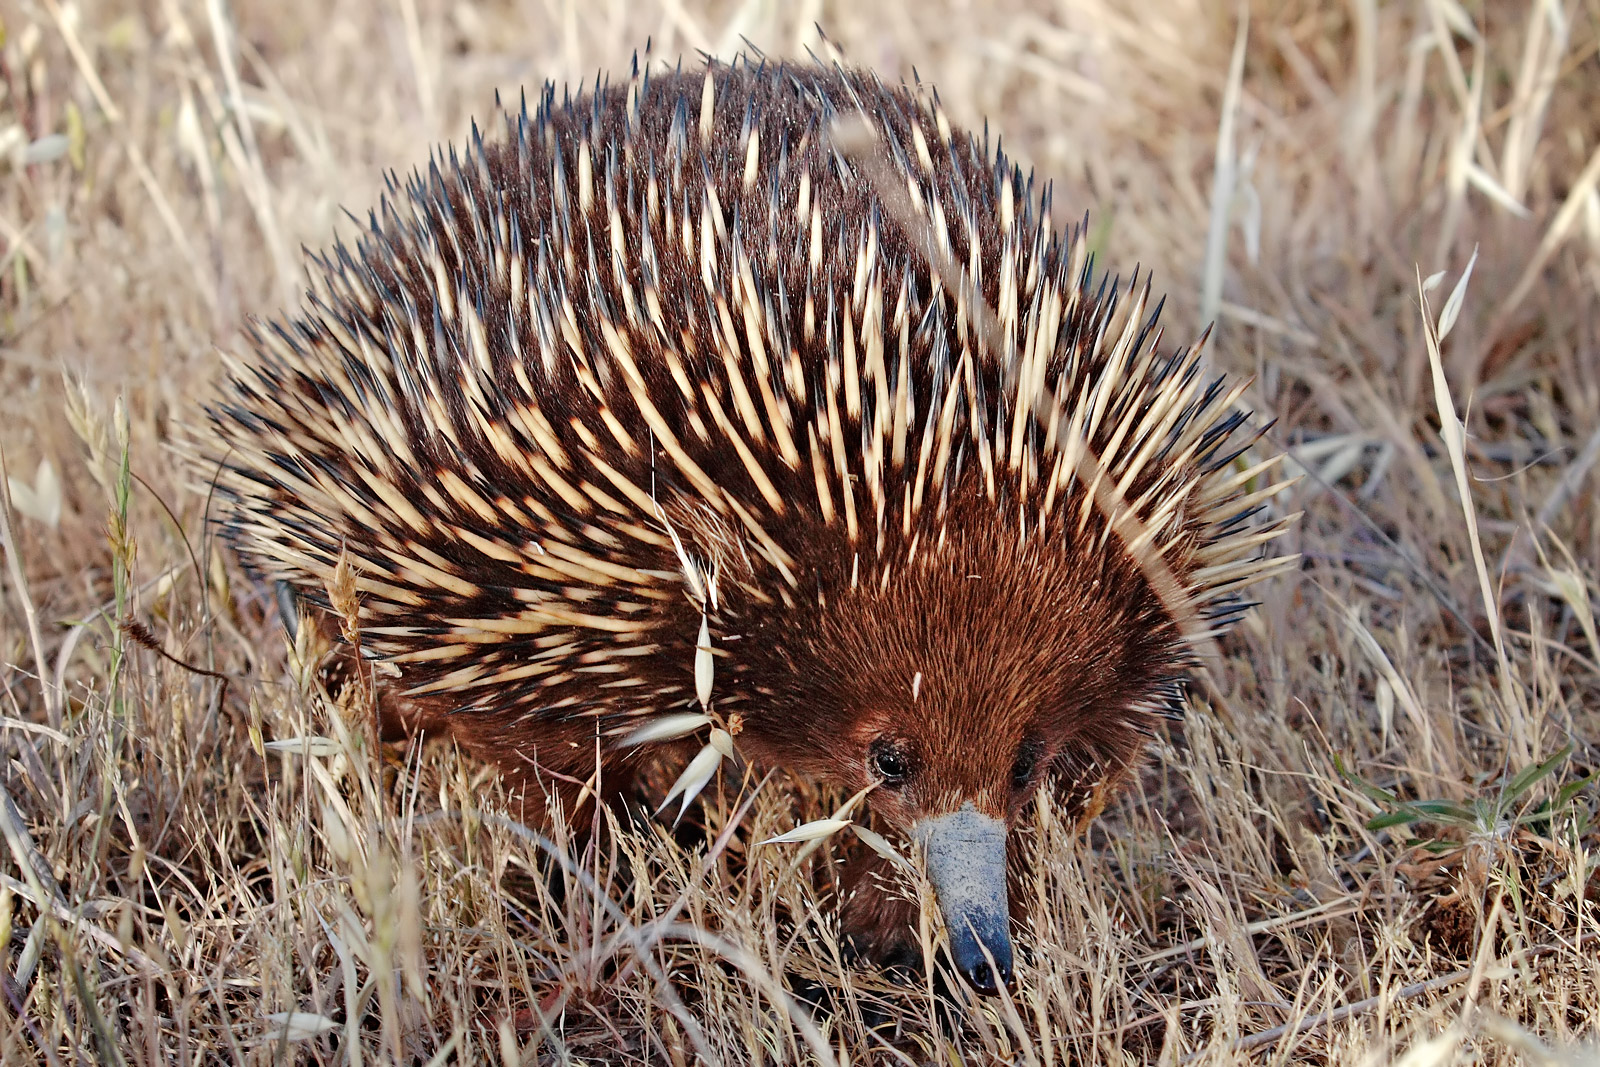 https://upload.wikimedia.org/wikipedia/commons/c/c9/Wild_shortbeak_echidna.jpg